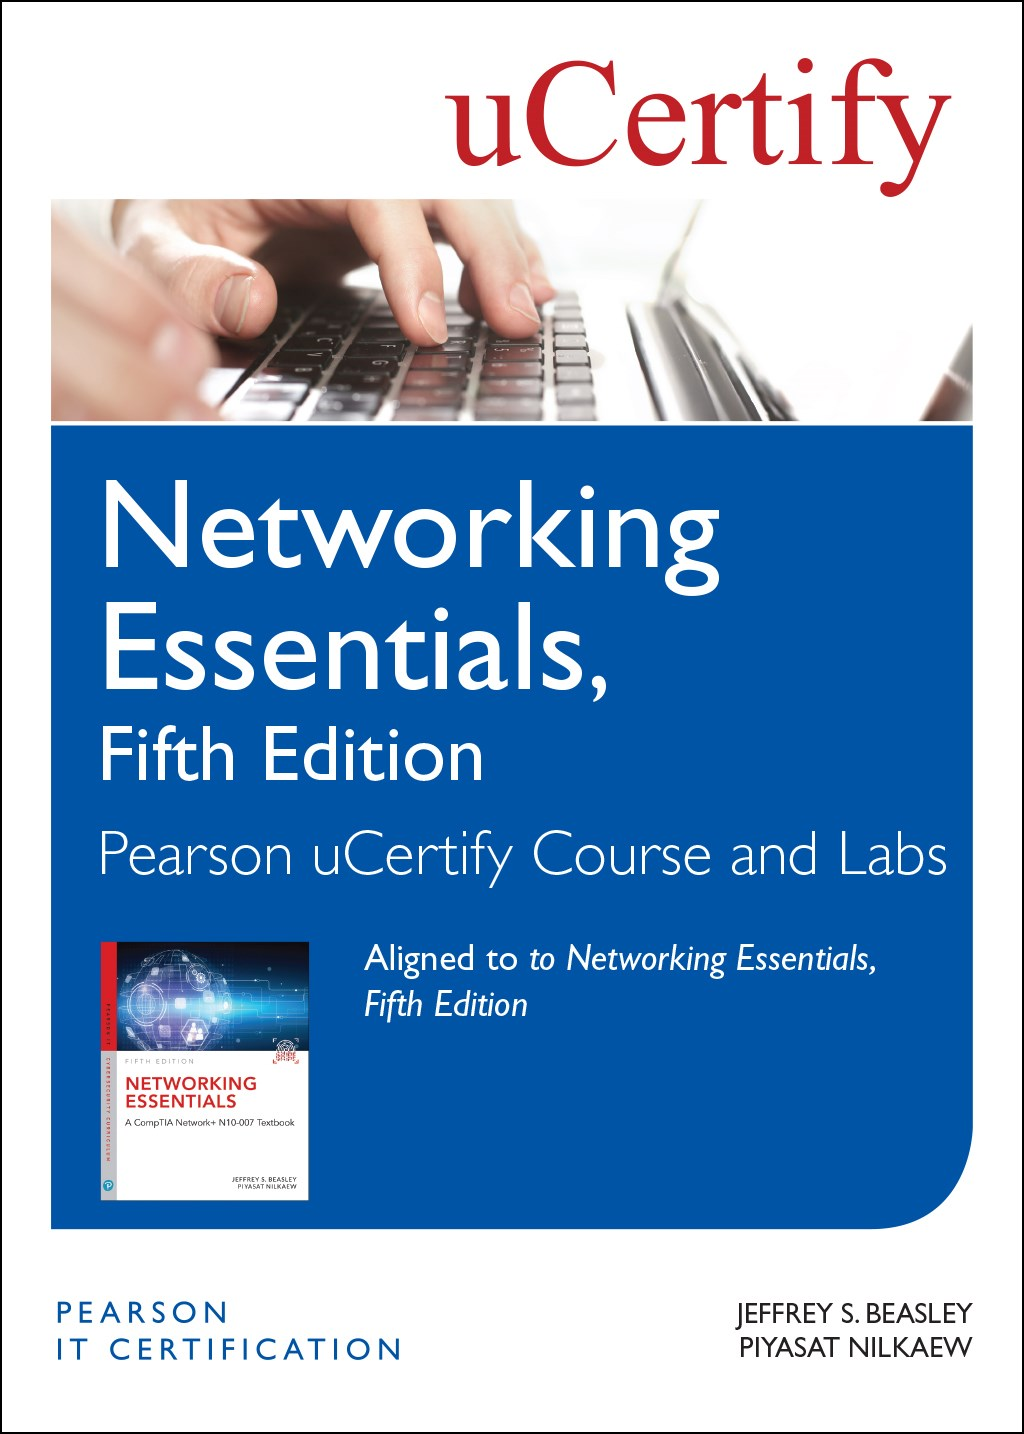 Networking Essentials Pearson uCertify Course and Labs Student Access Card